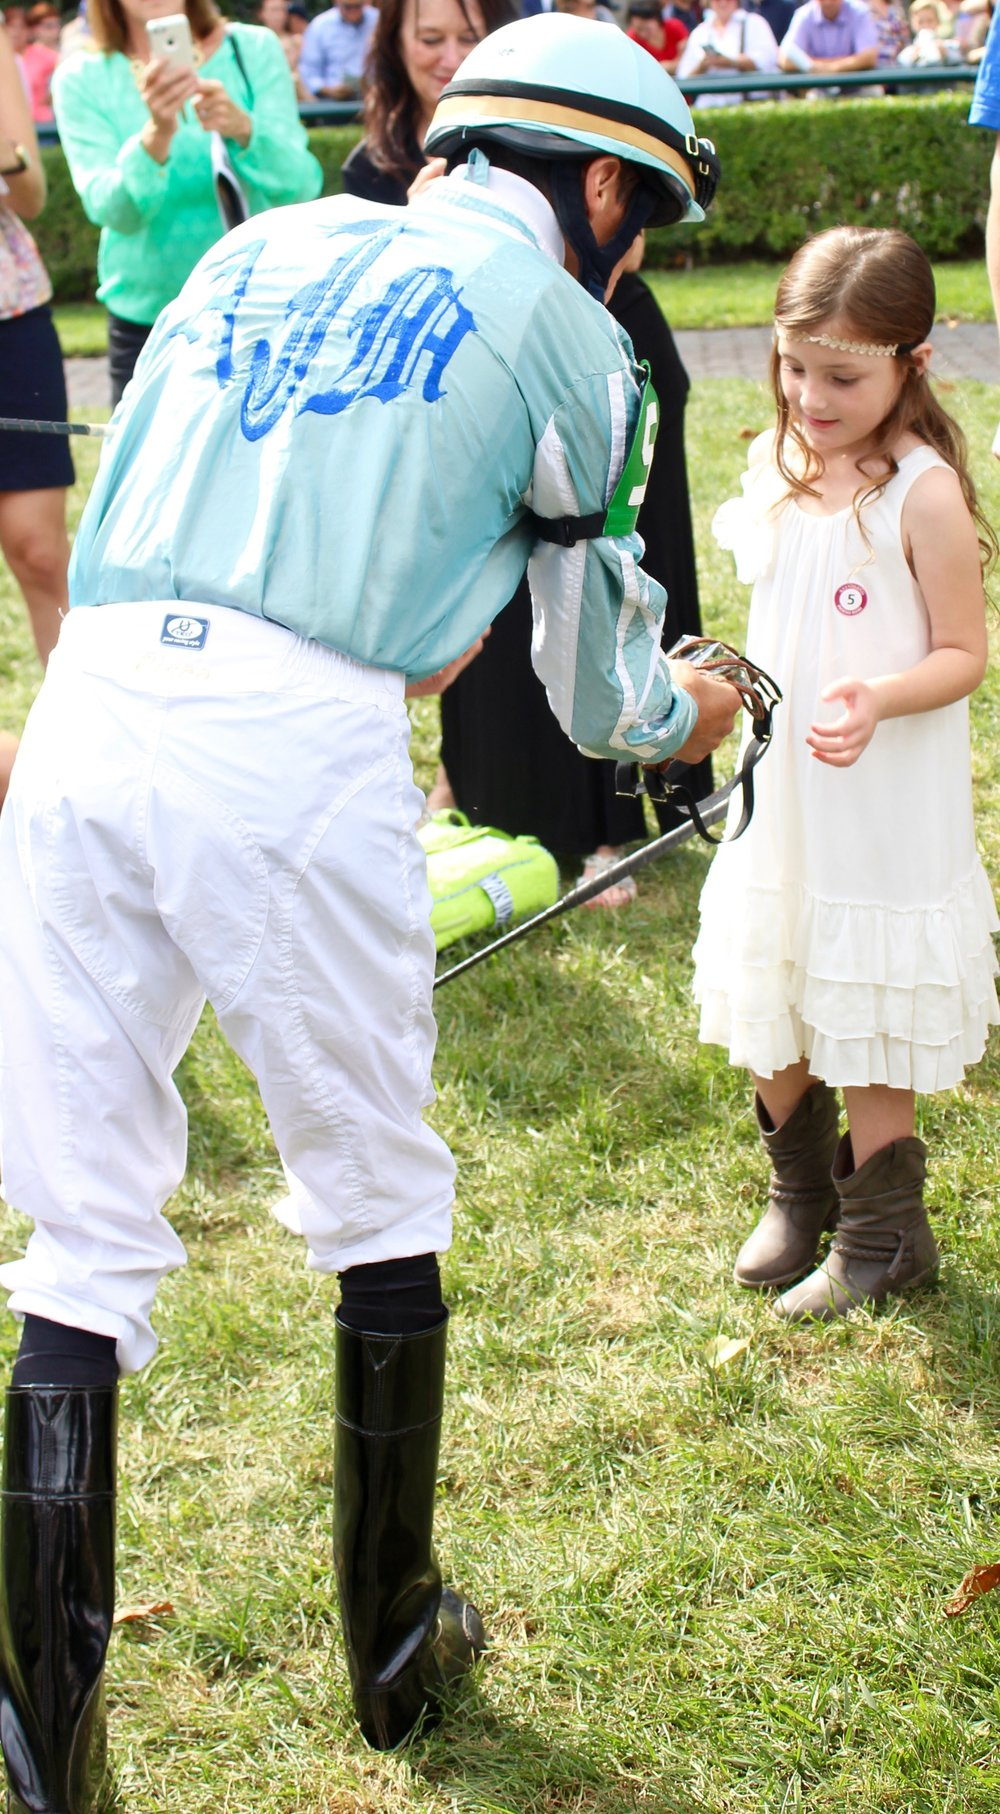 Make a Wish Day at Keeneland